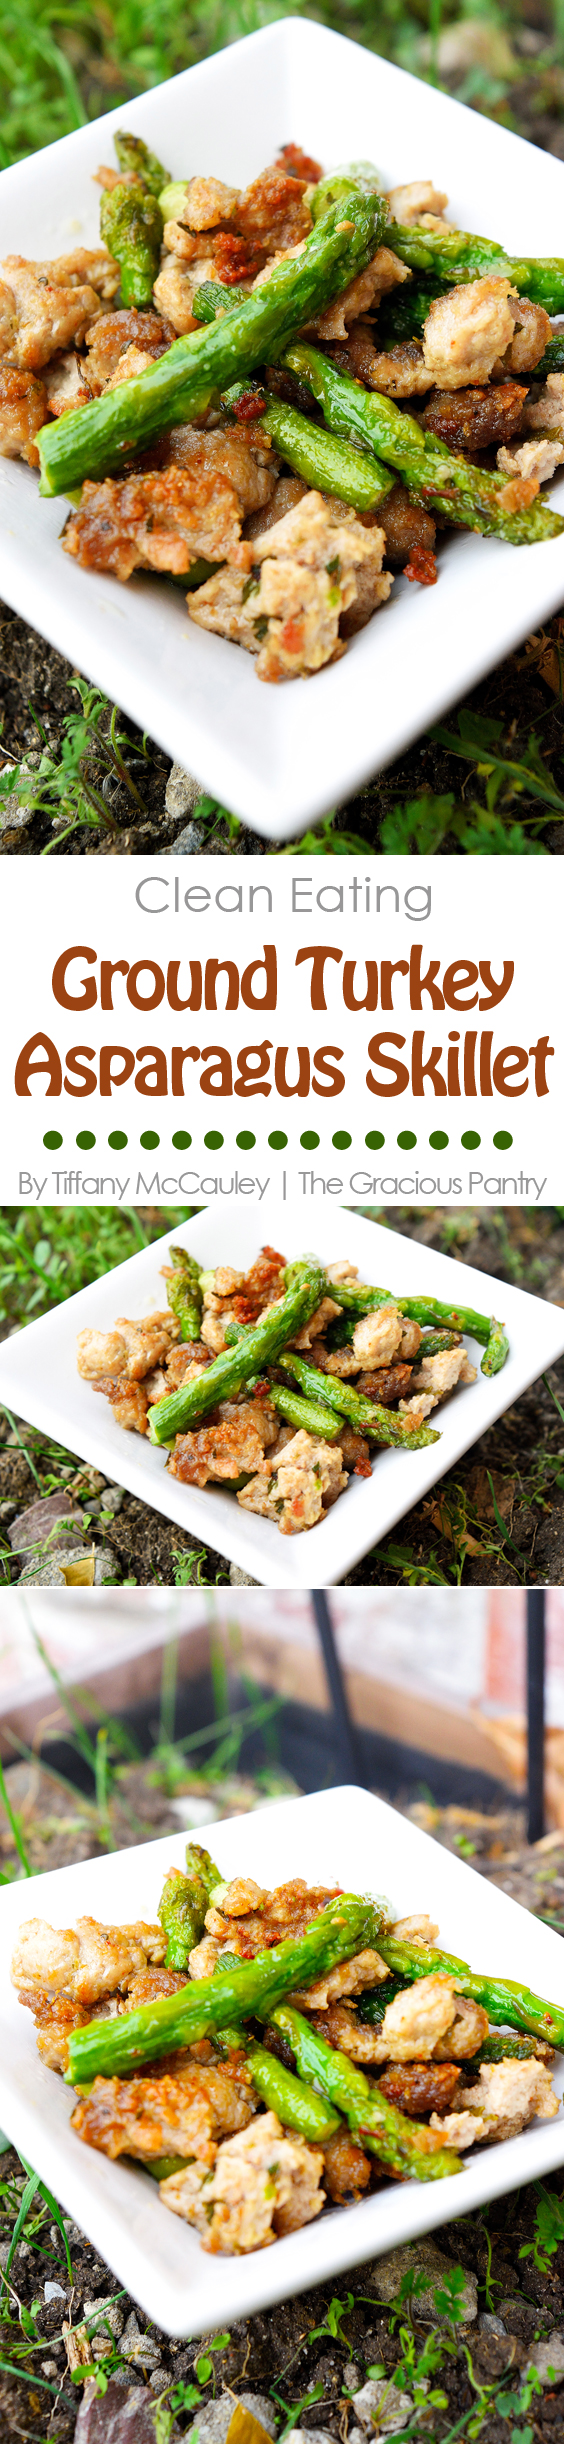 Ground Turkey Dinner + 19 Ground Turkey Recipes | The Gracious Pantry